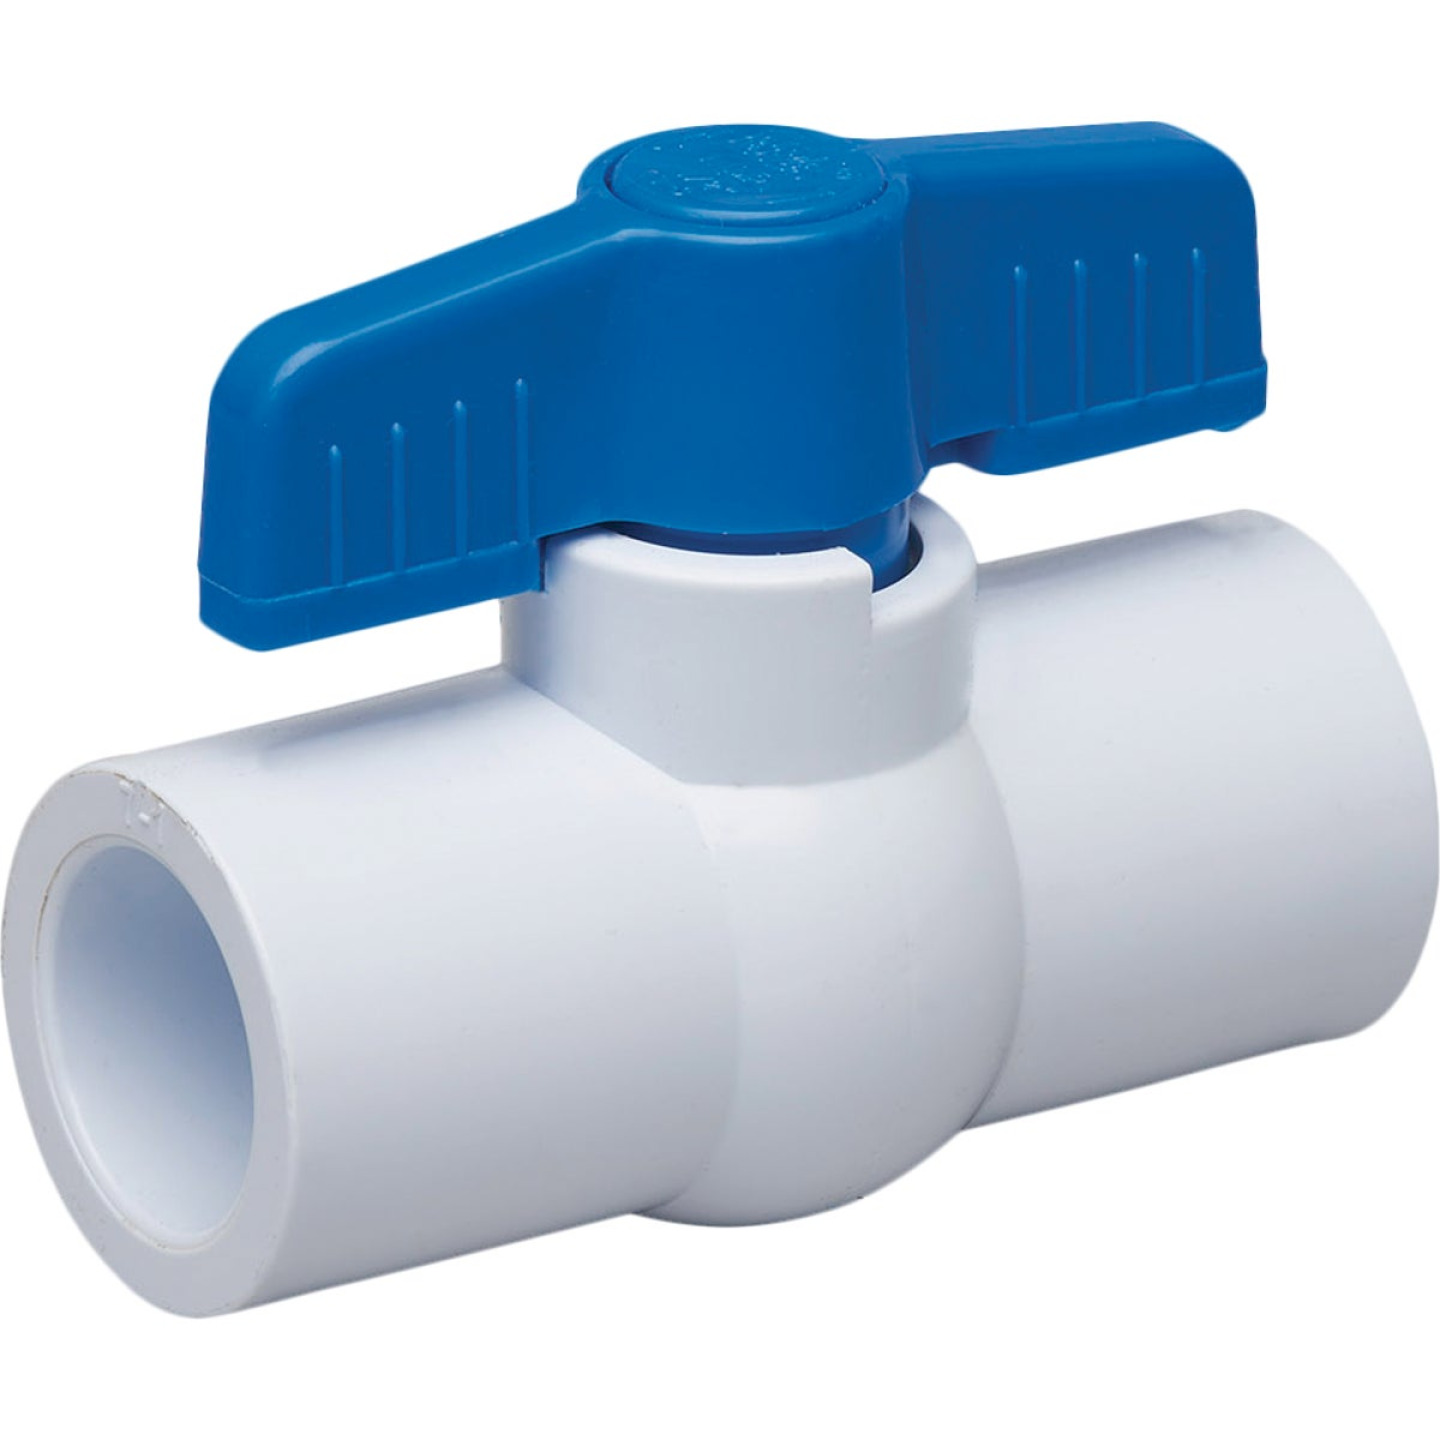 Proline 3/4 In. Solvent x 3/4 In. Solvent PVC Schedule 40 Quarter Turn Ball Valve, Non-NSF Image 1